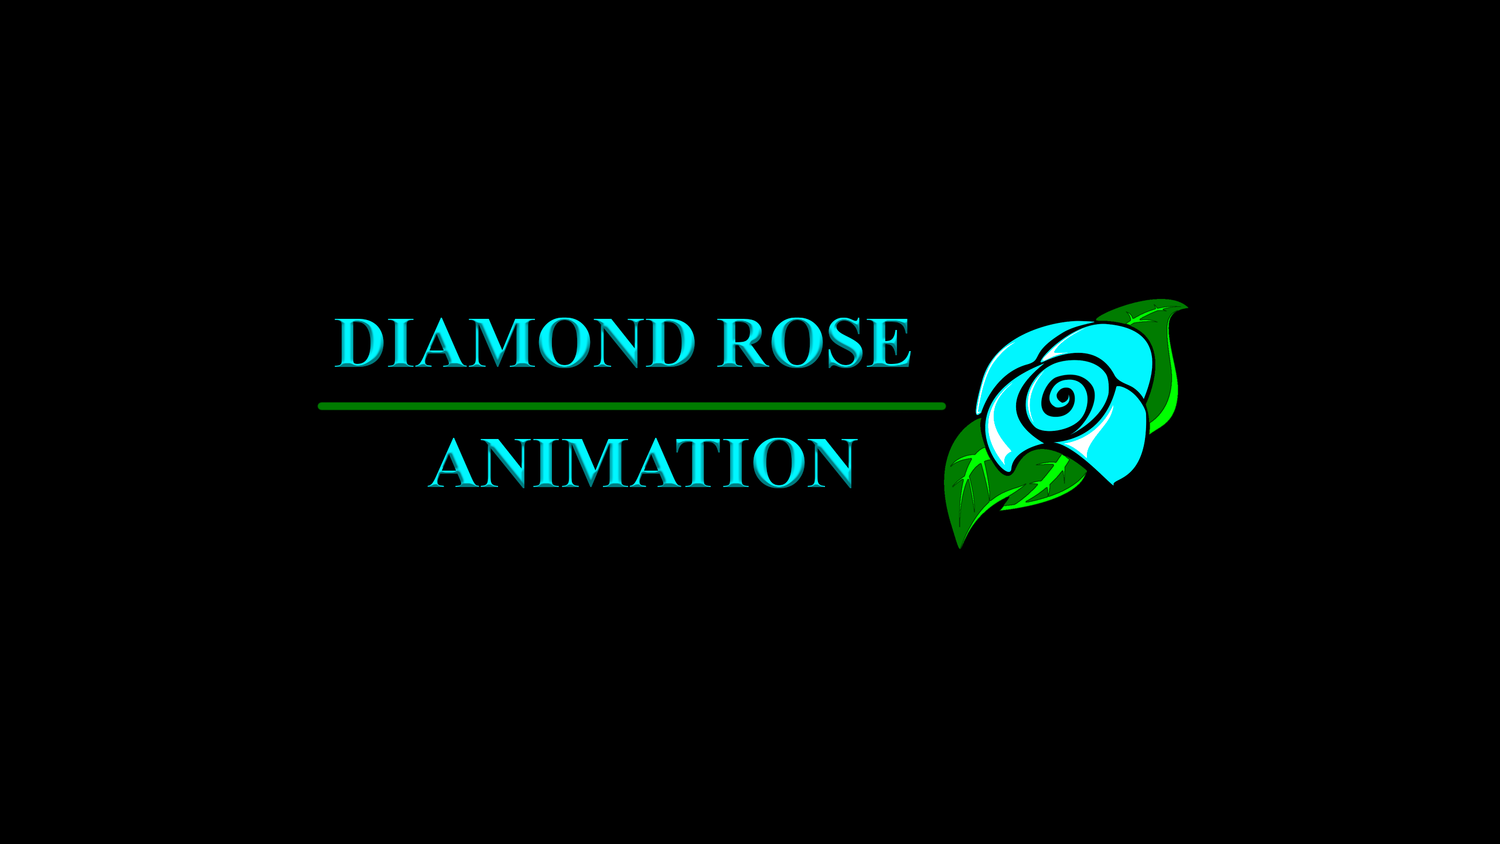 DIAMOND ROSE ANIMATION